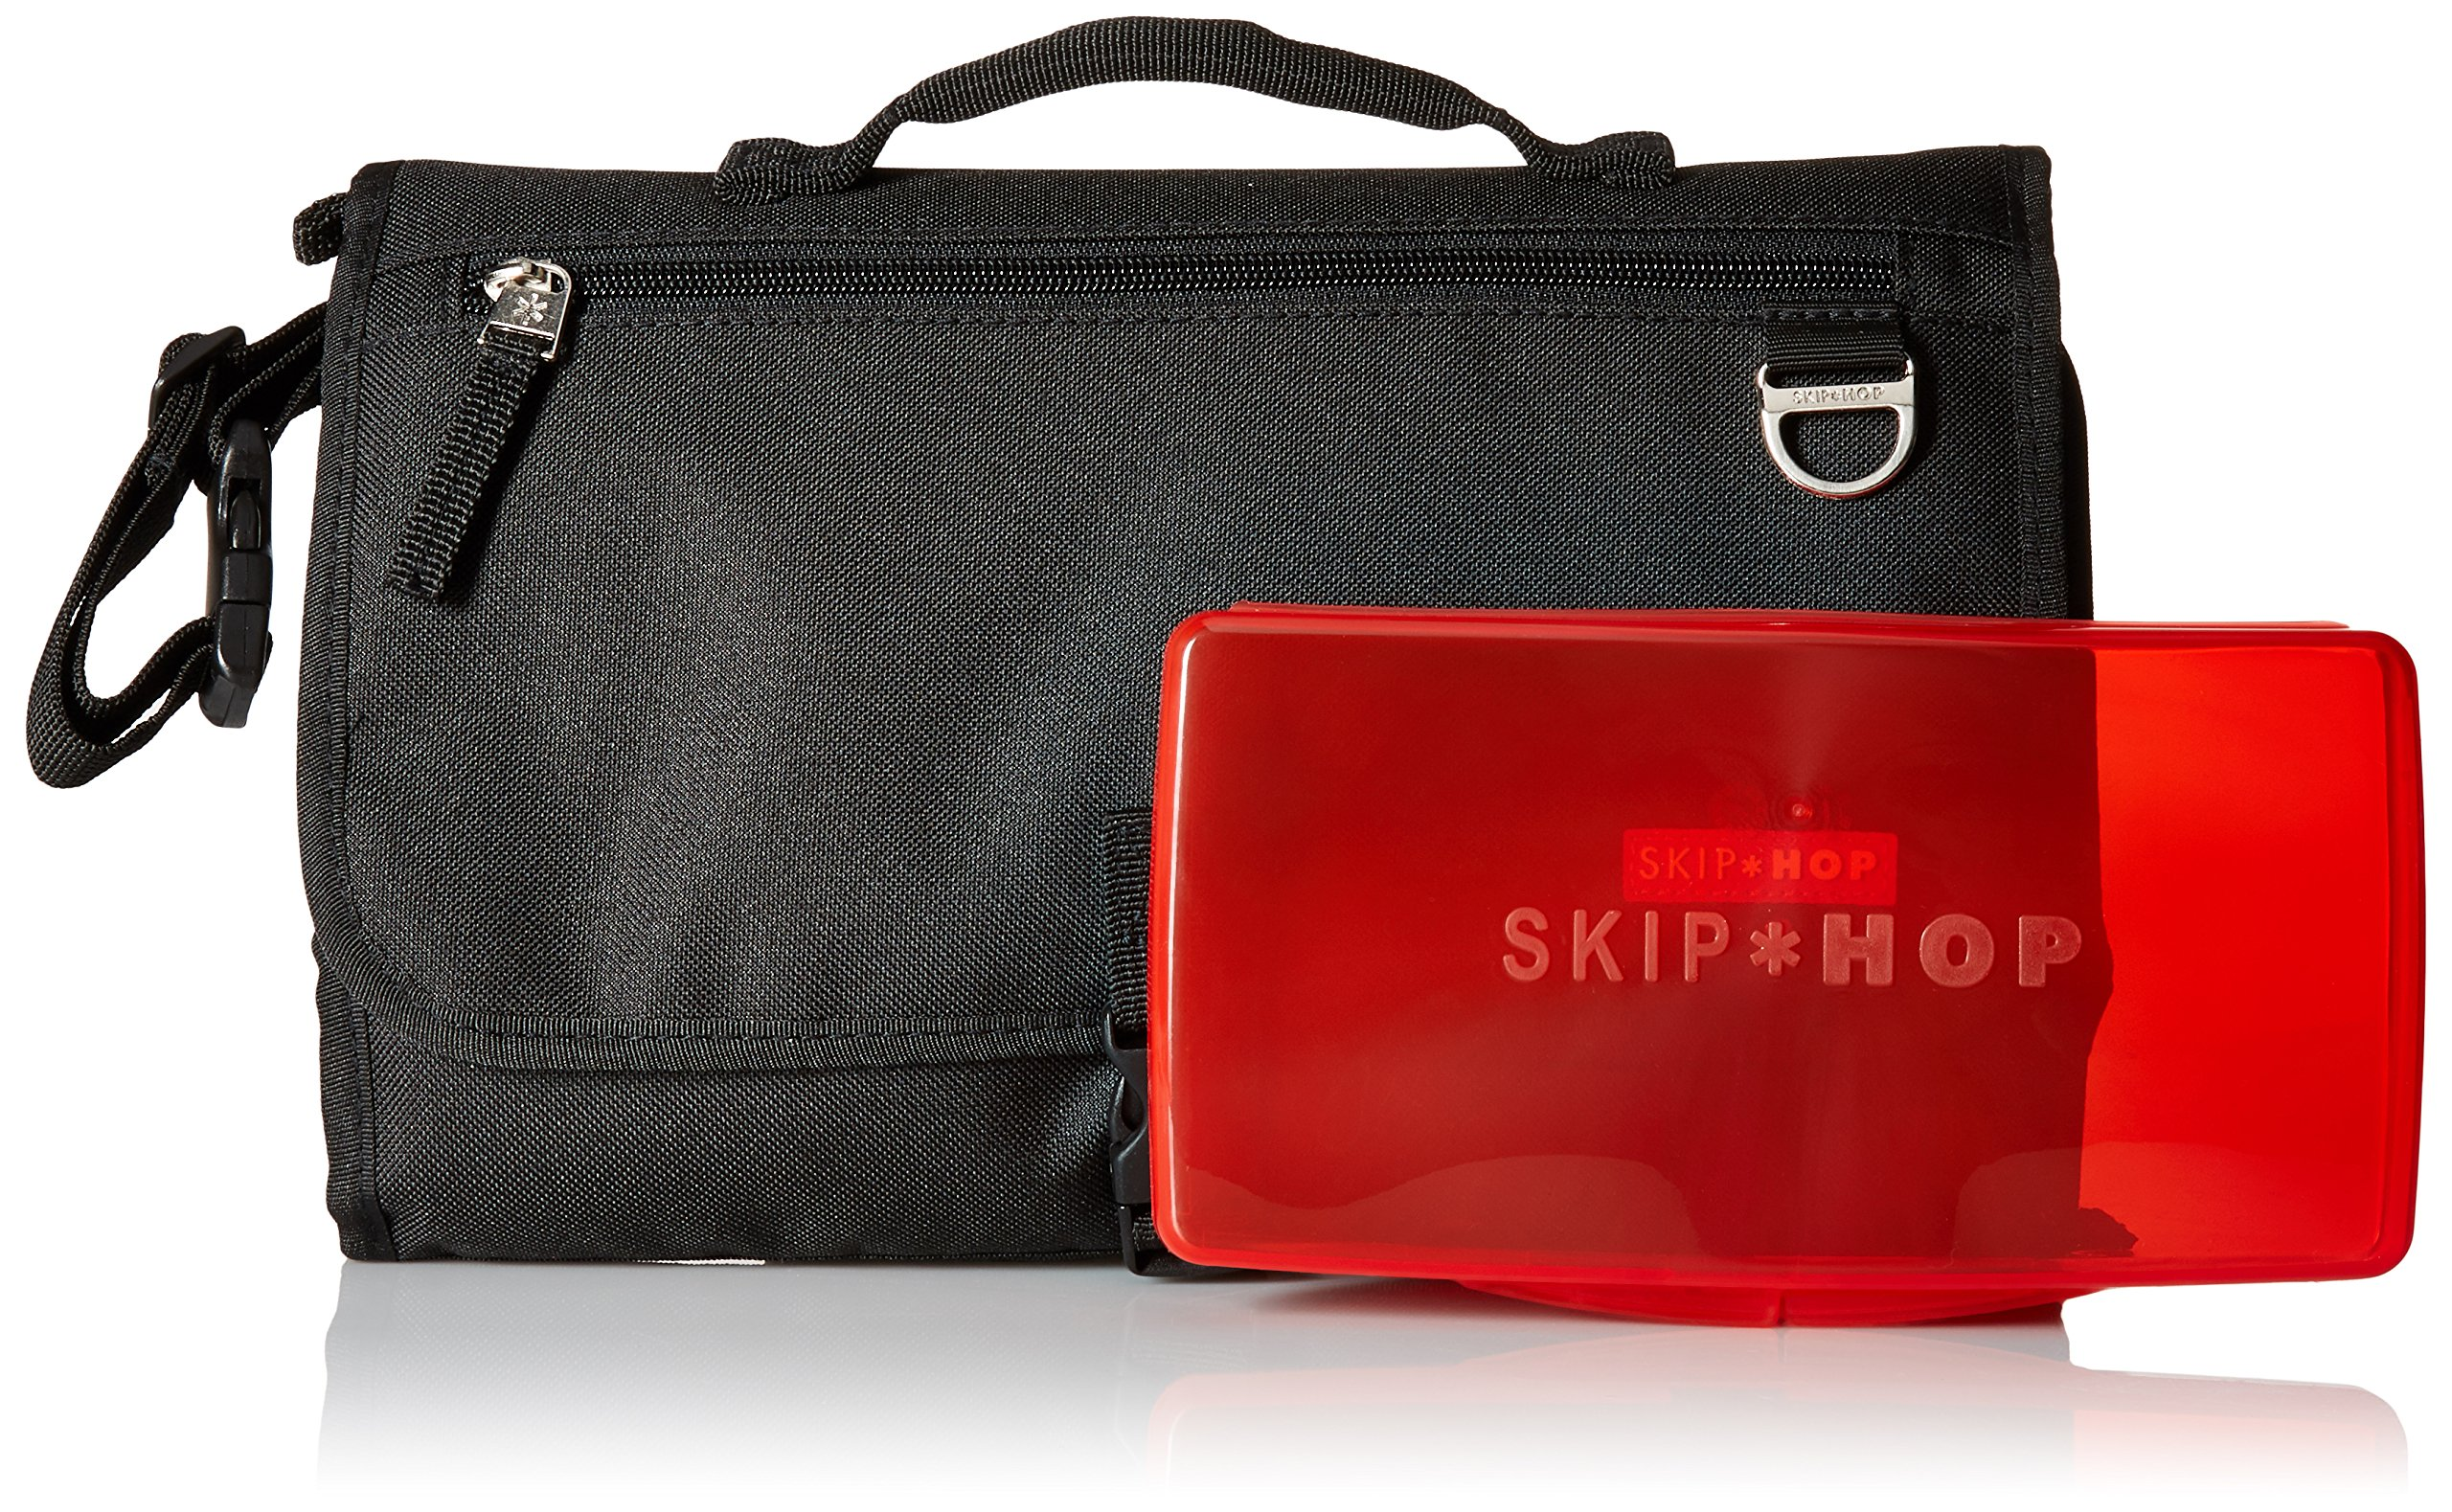 Skip Hop Pronto Signature Changing Set, Black Skip Hop Changing pad: extra-wide for wiggly babies. wipes clean. Two-in-one: pad zips off for independent use Translucent wipes case: see-through for timely reloads 6